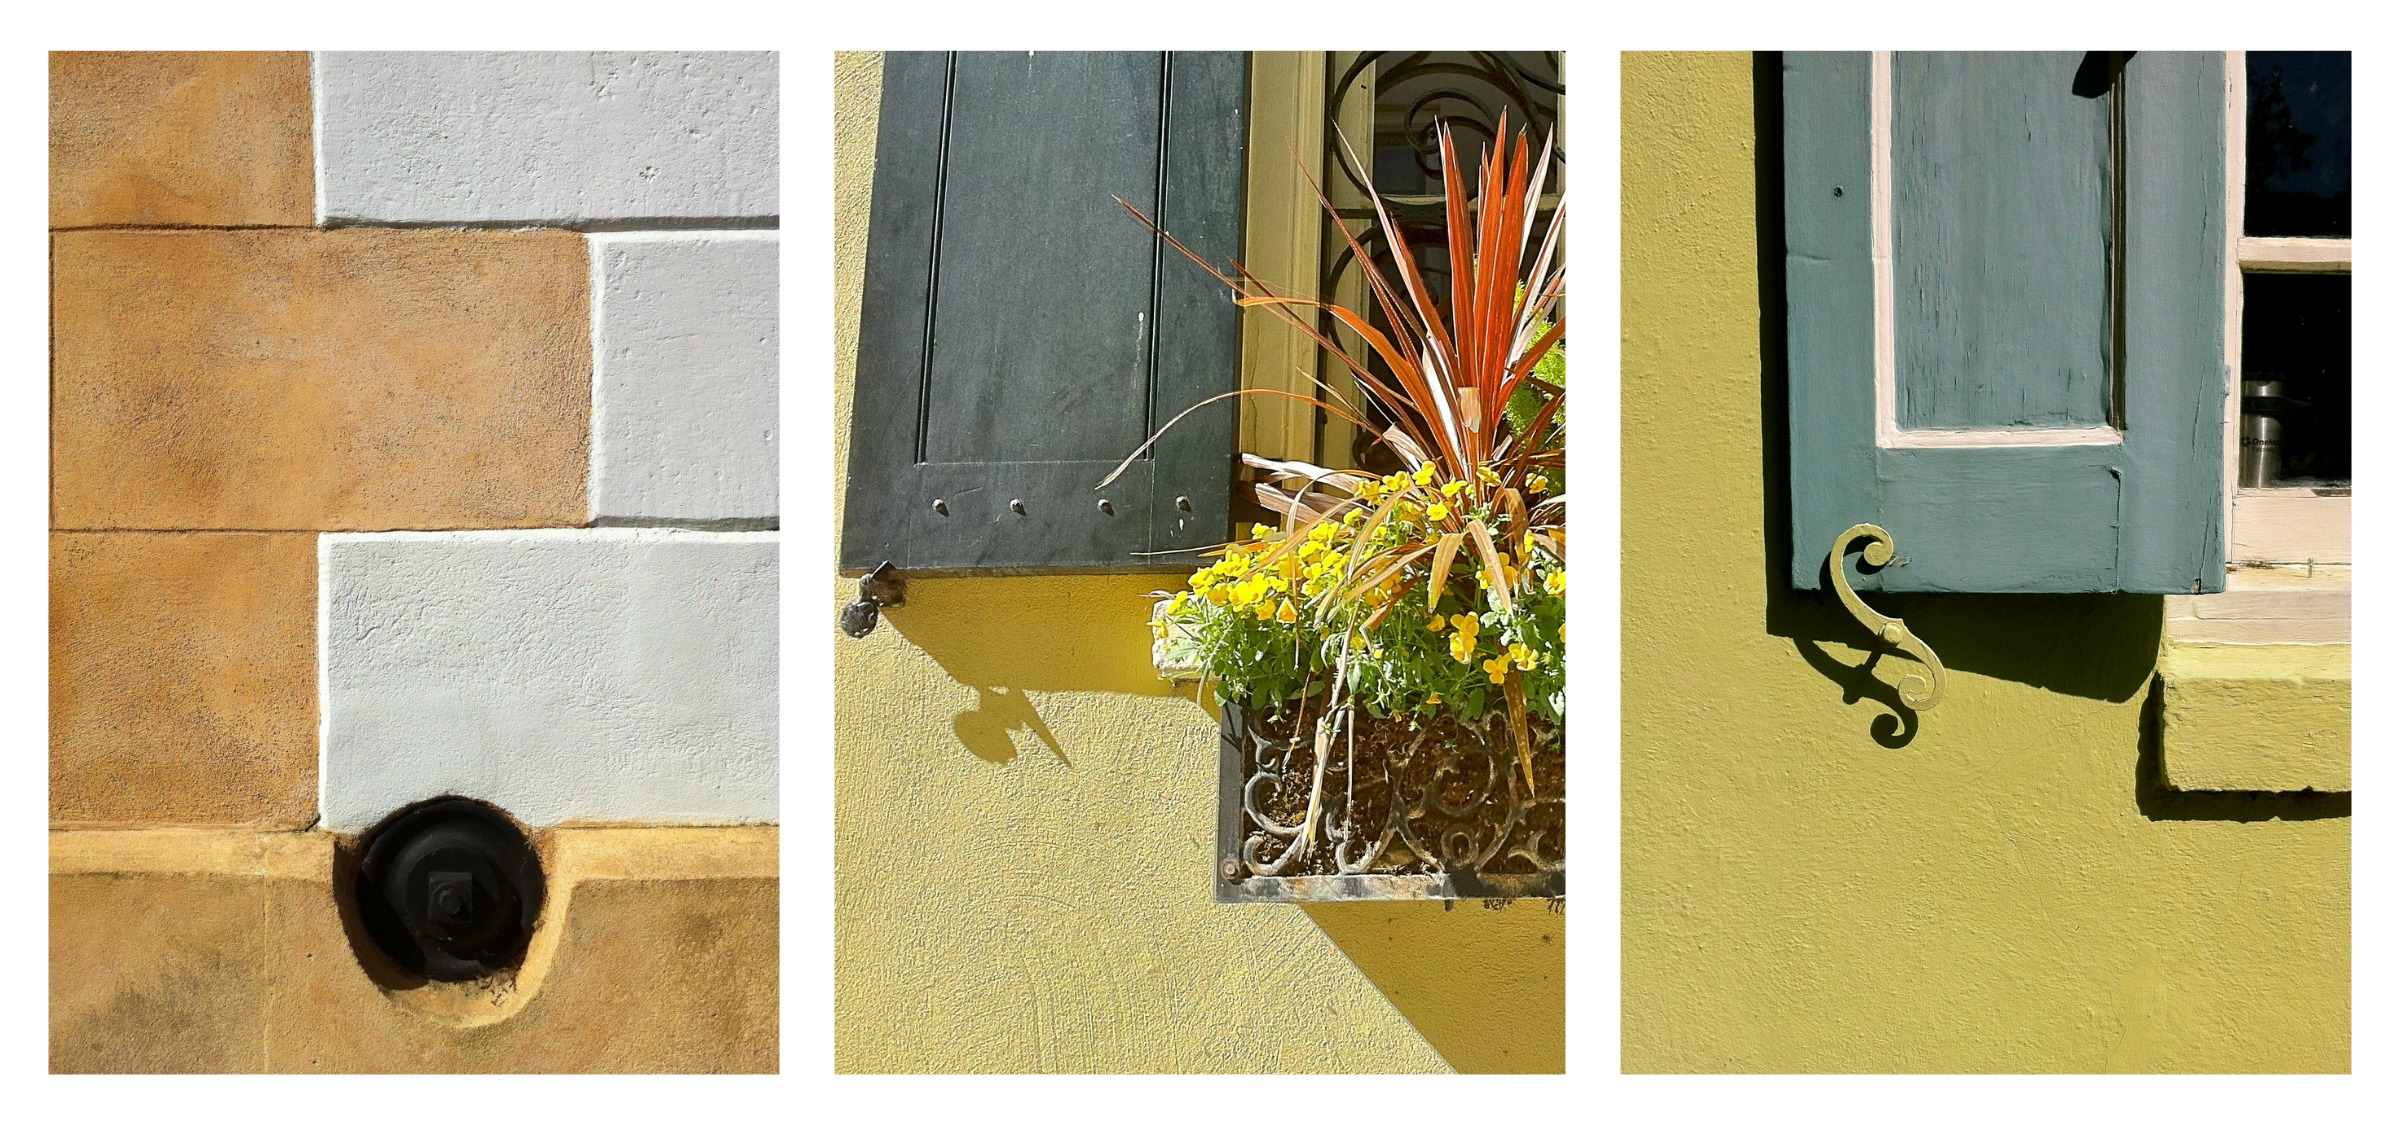 Check out Joan Perry's great blog called Charleston Daily Photo for more Charleston loveliness.